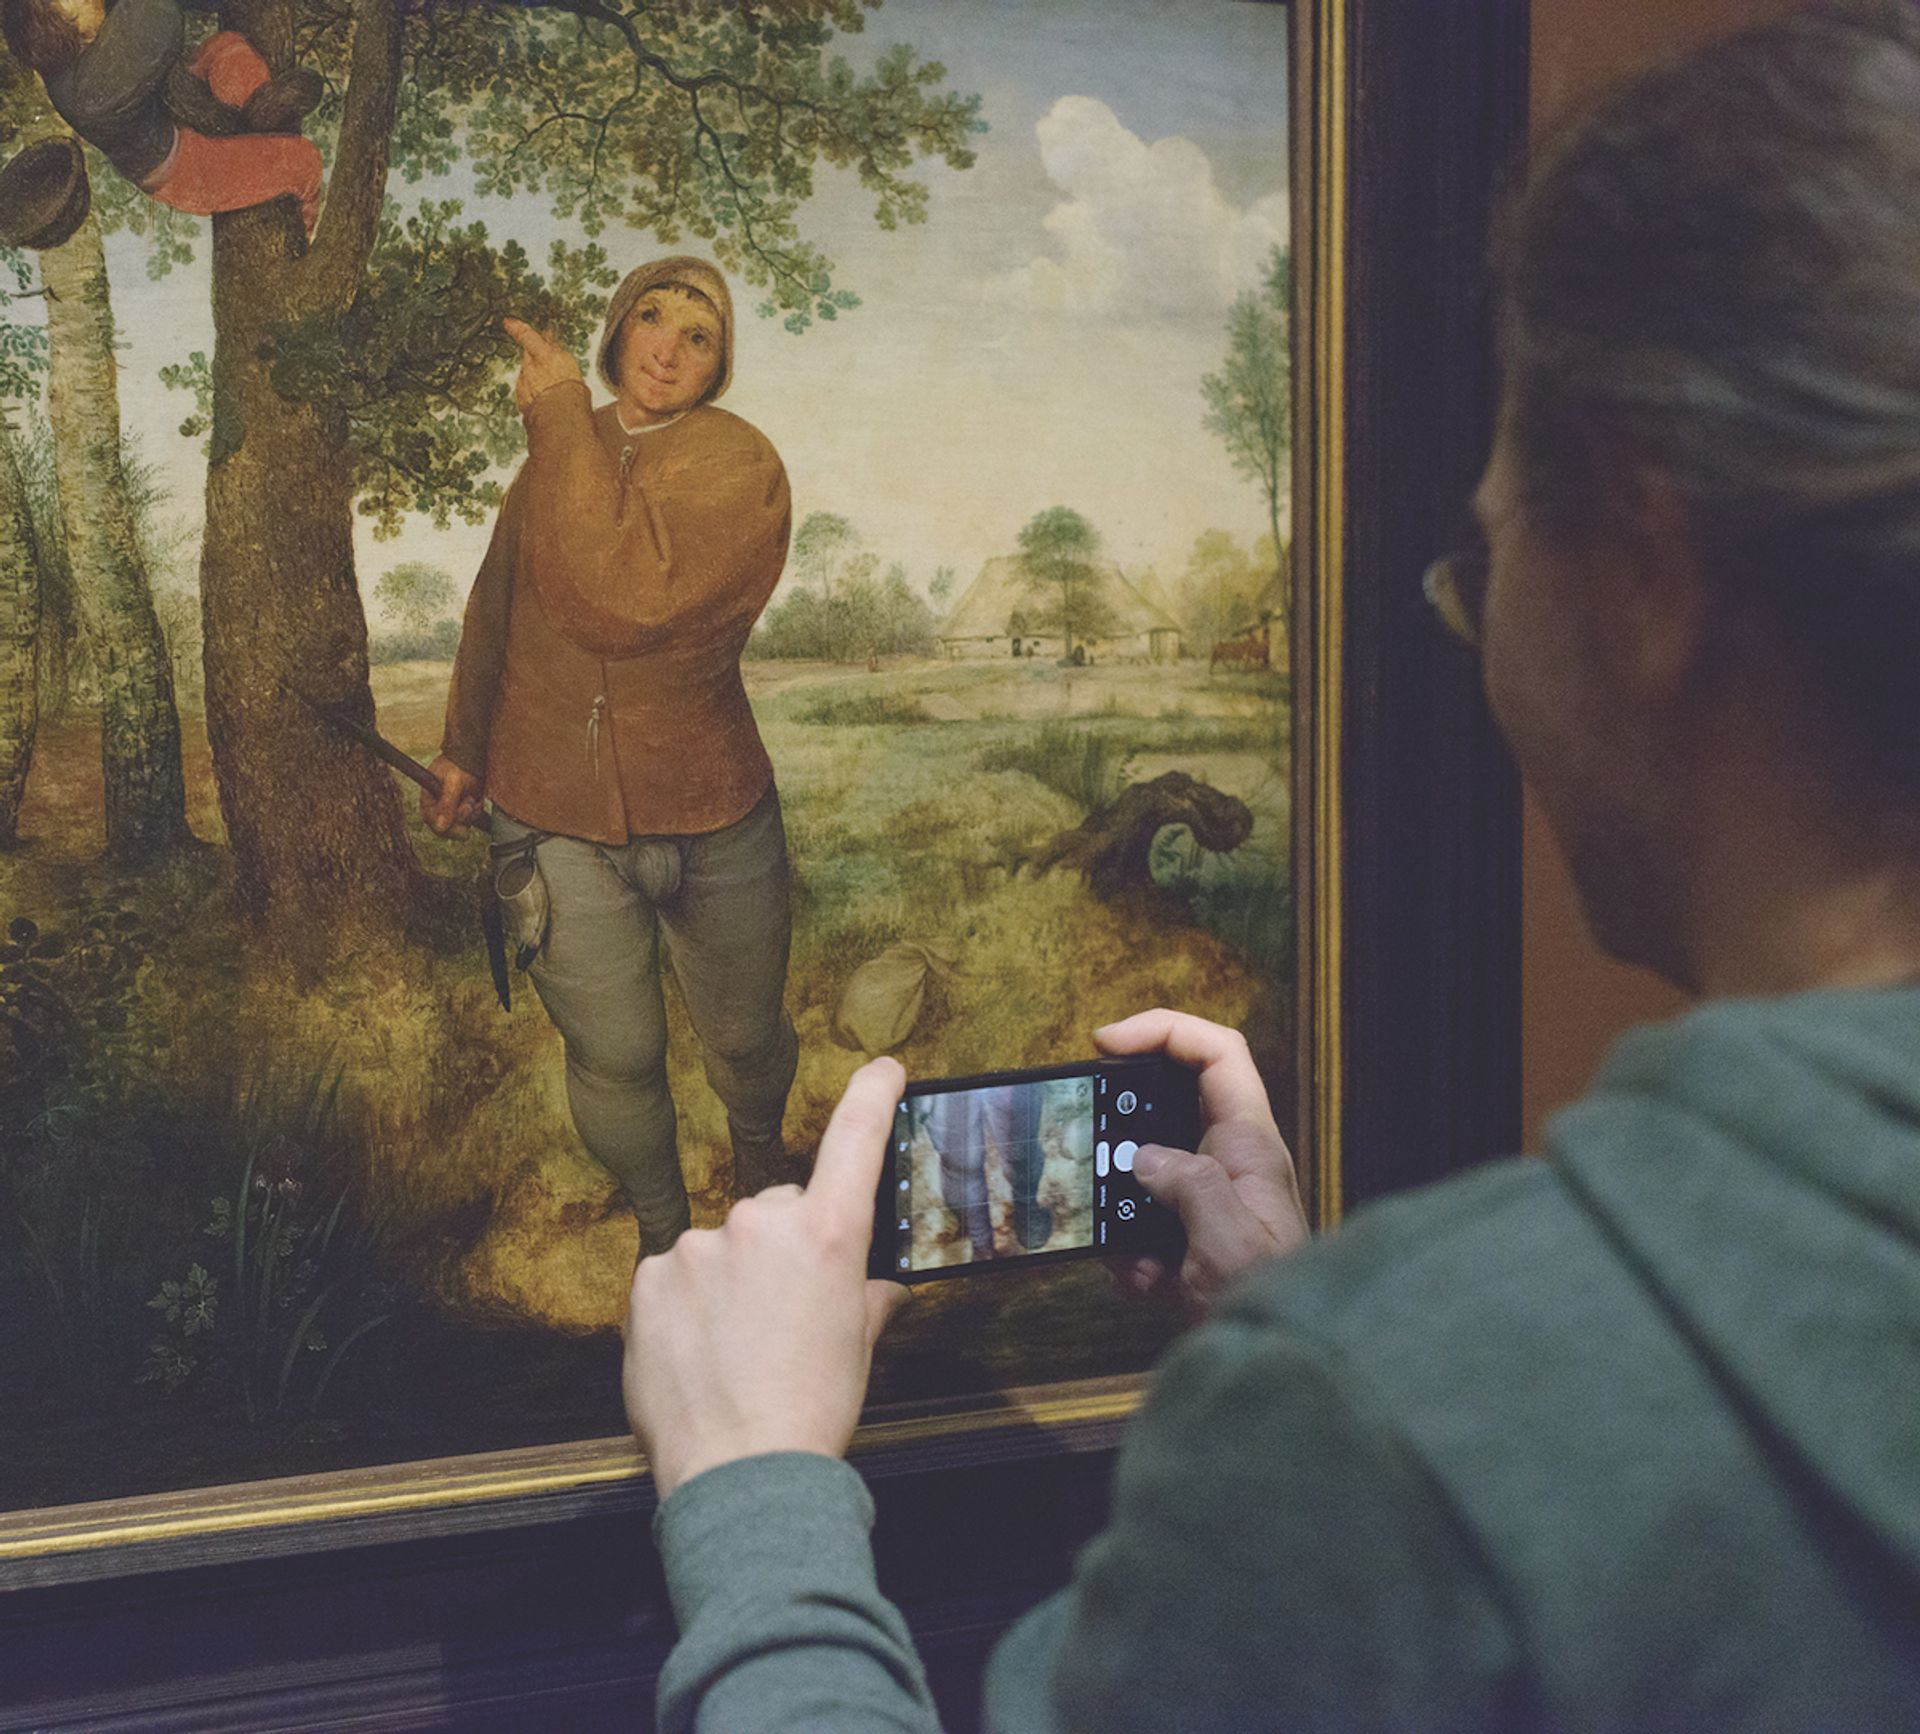 Pieter Bruegel the Elder's The Peasant and the Nest Robber (1568) with gesture-controlled multimedia guide at the Kunsthistorisches Museum in Vienna © Sabine Gruber/Arches